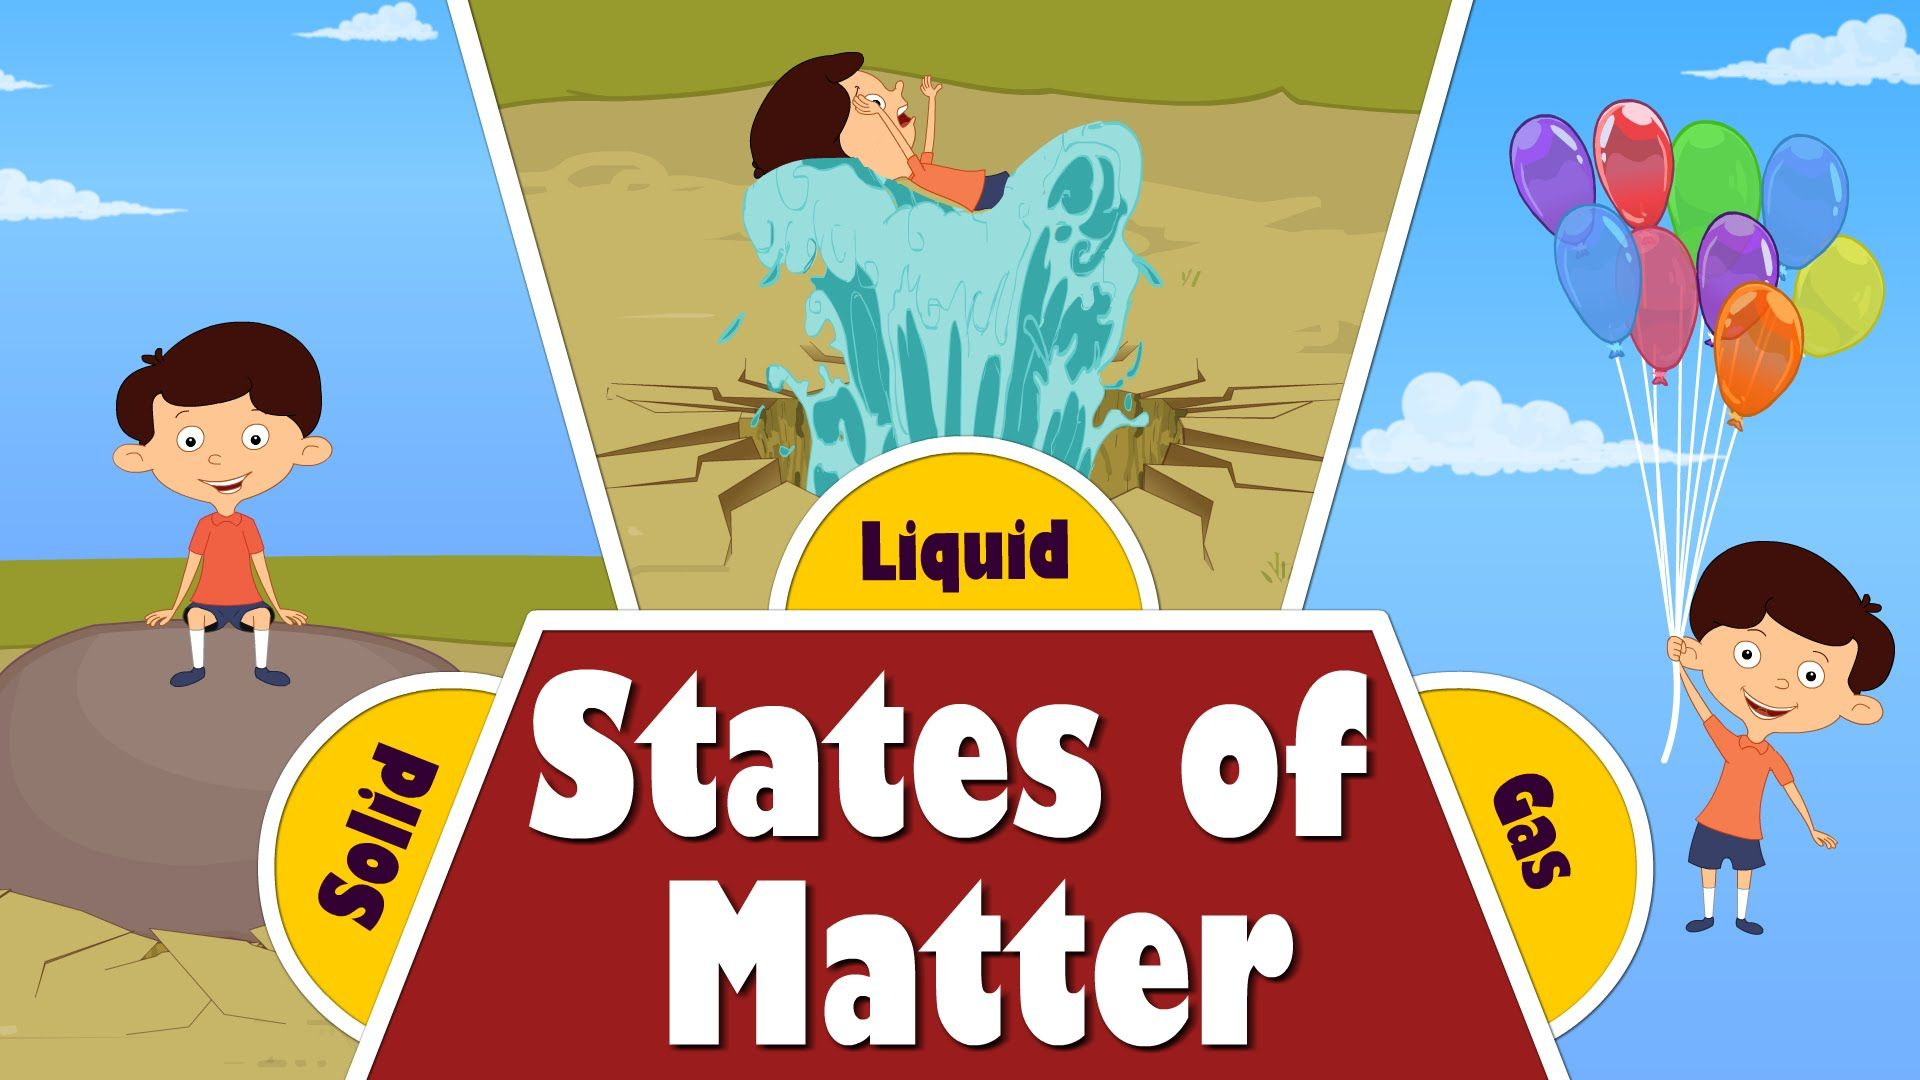 You Will Learn About States Of Matter In This Video